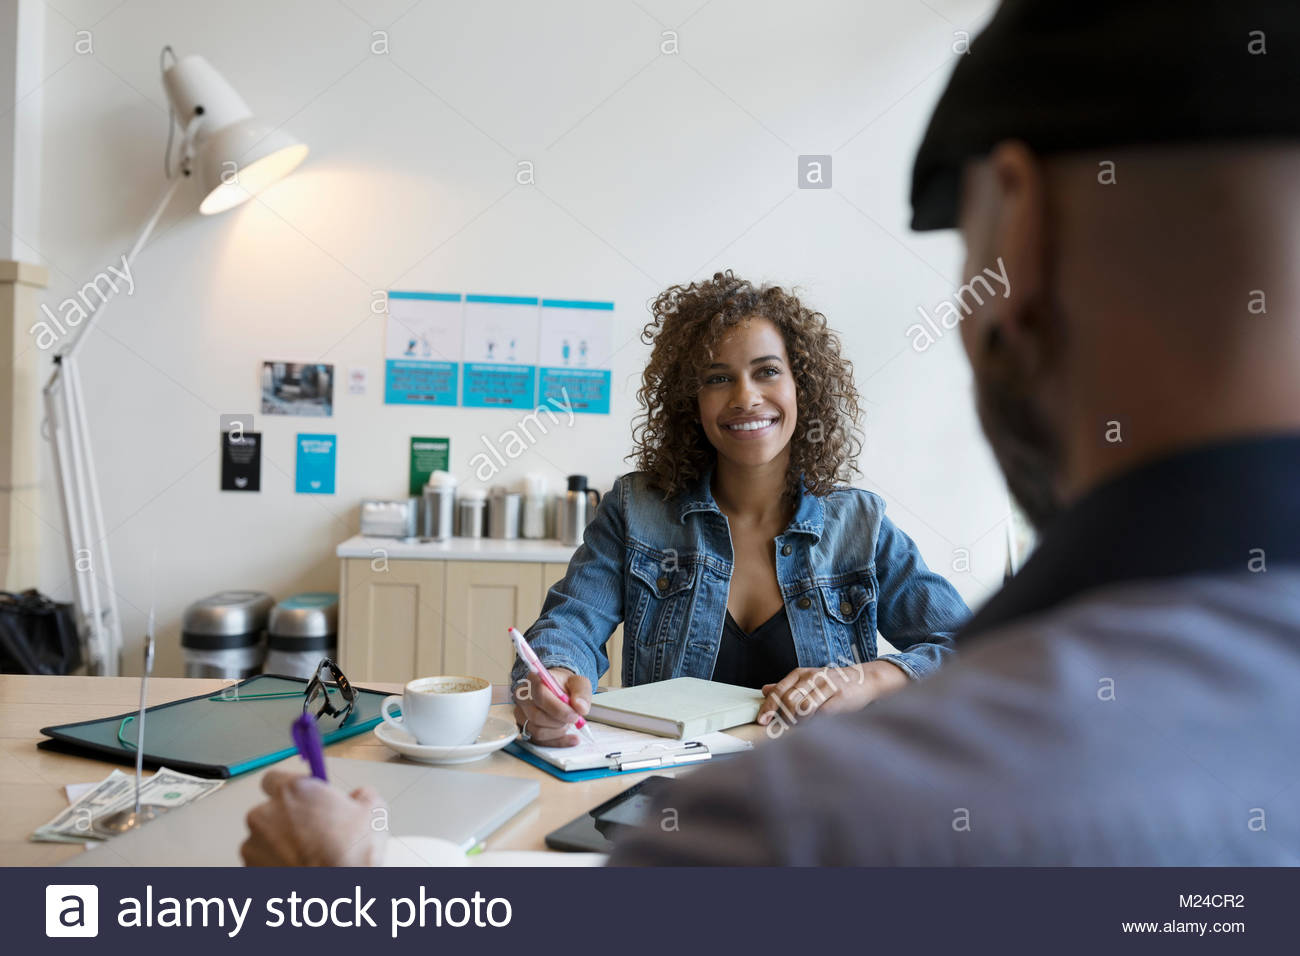 Smiling small business owners working, planning at table - Stock Image